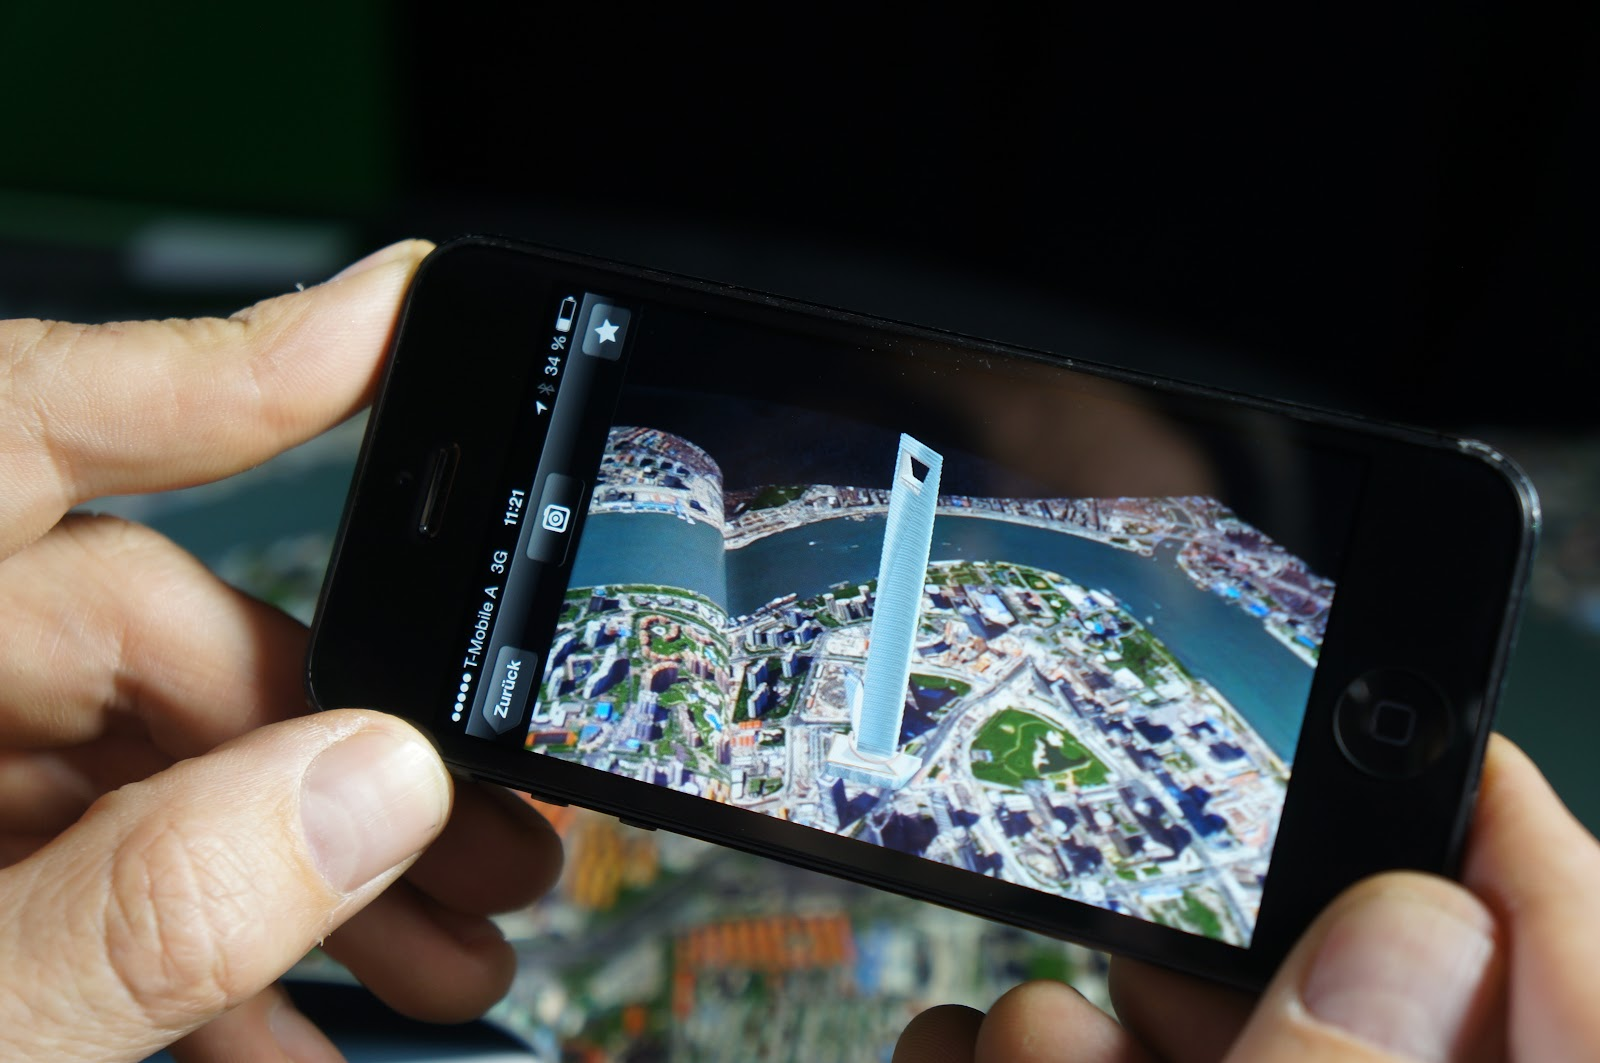 augmented reality for hotels in the form of AR maps